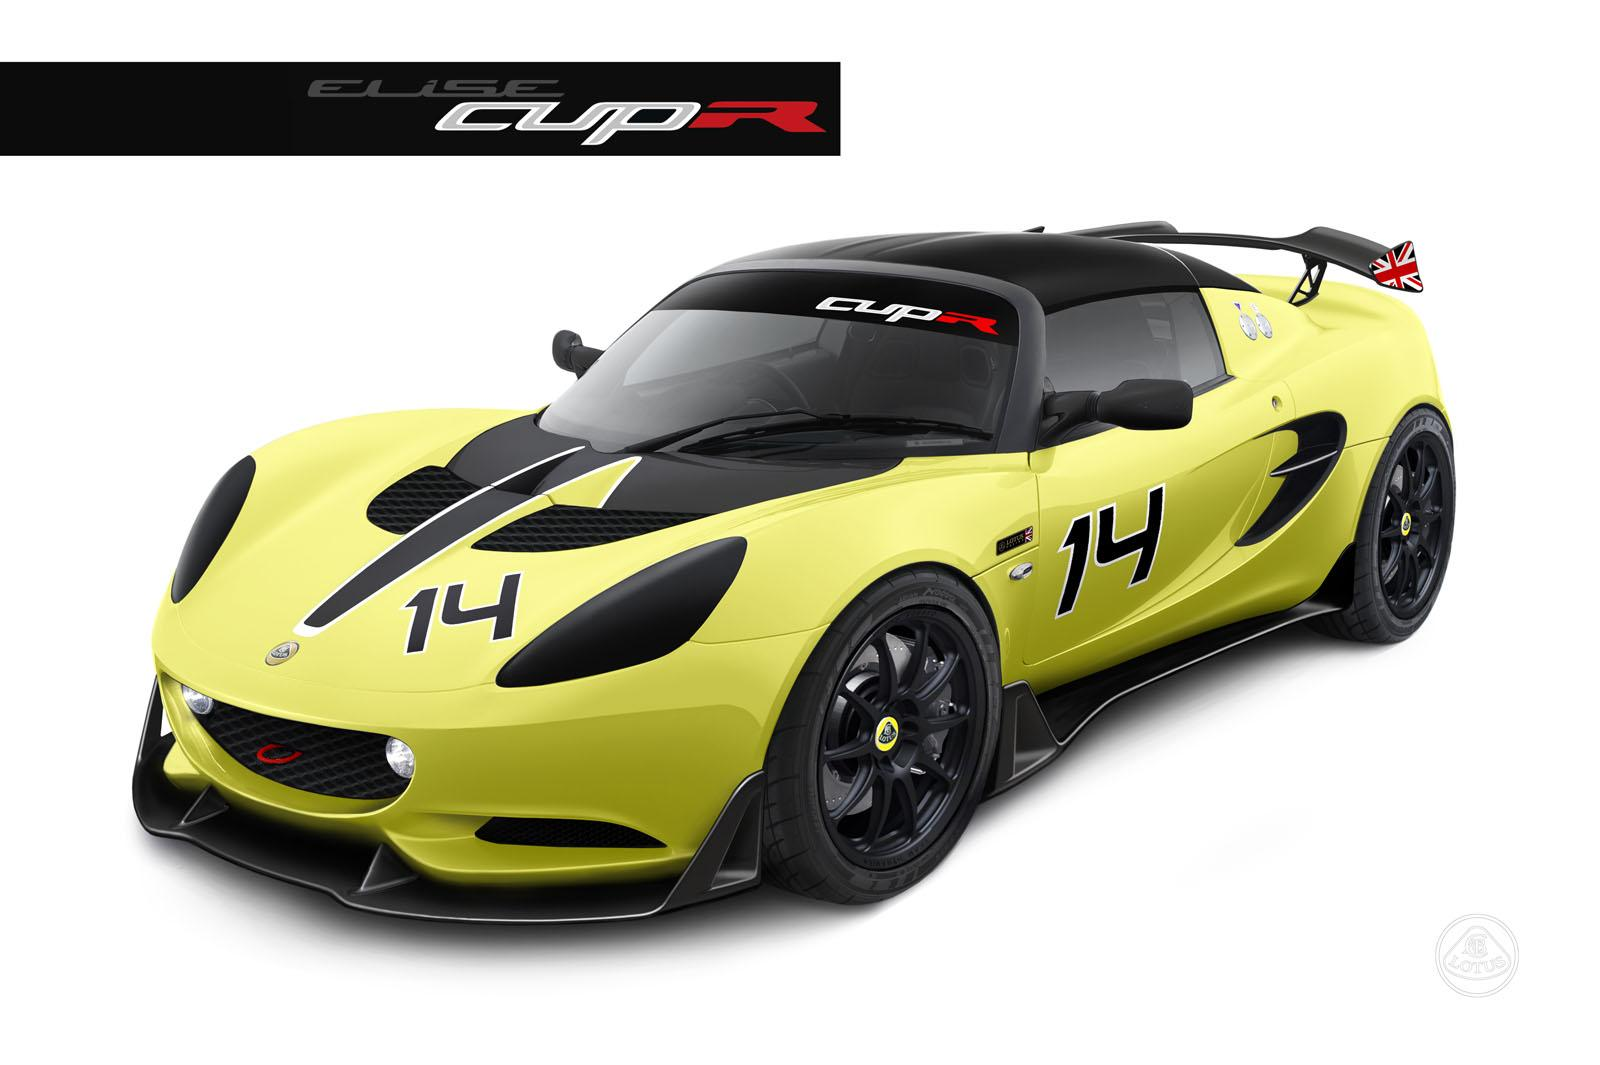 2014 lotus elise s cup r announced autoevolution. Black Bedroom Furniture Sets. Home Design Ideas